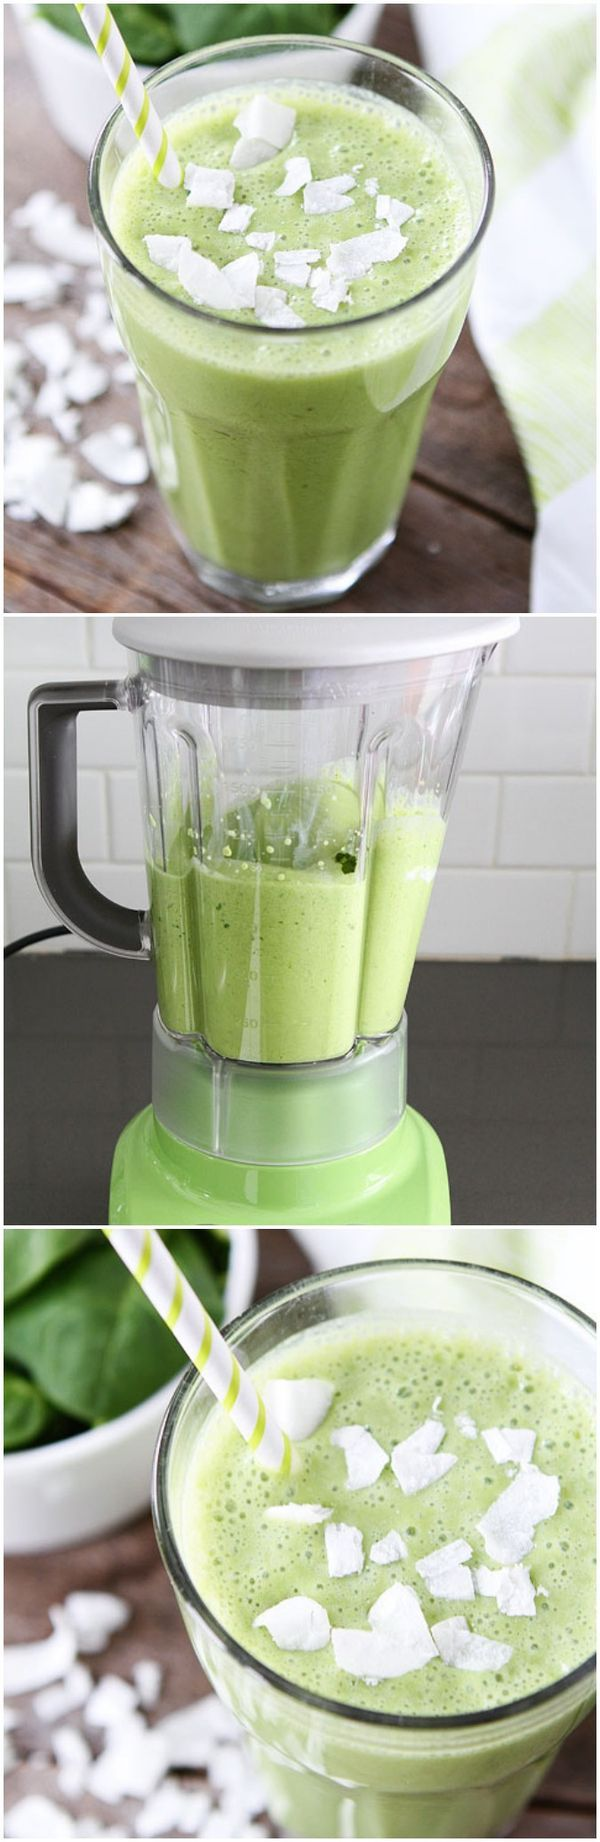 Coconut Green Smoothie Recipe on twopeasandtheirpod.com Love this simple green smoothie!